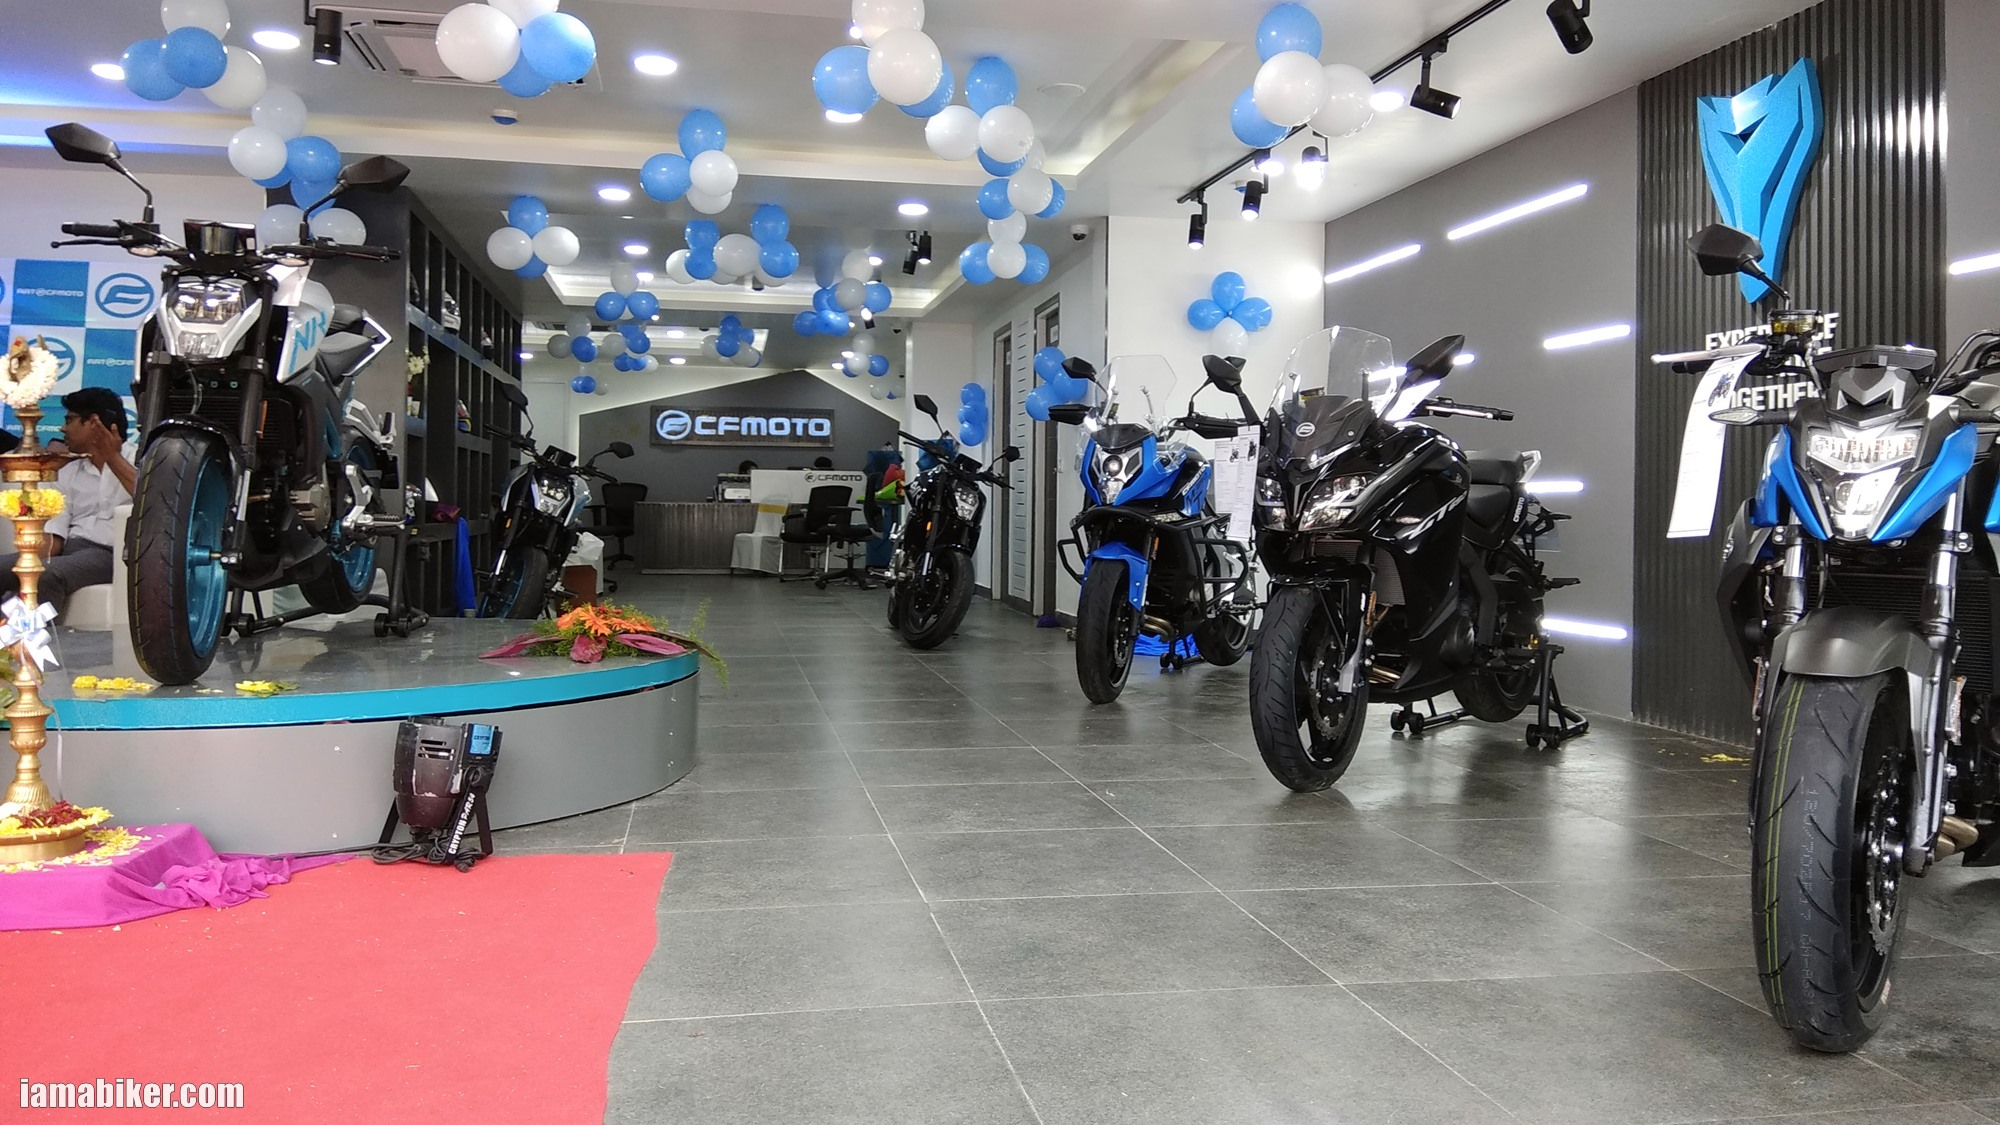 CF Moto Bengaluru dealership